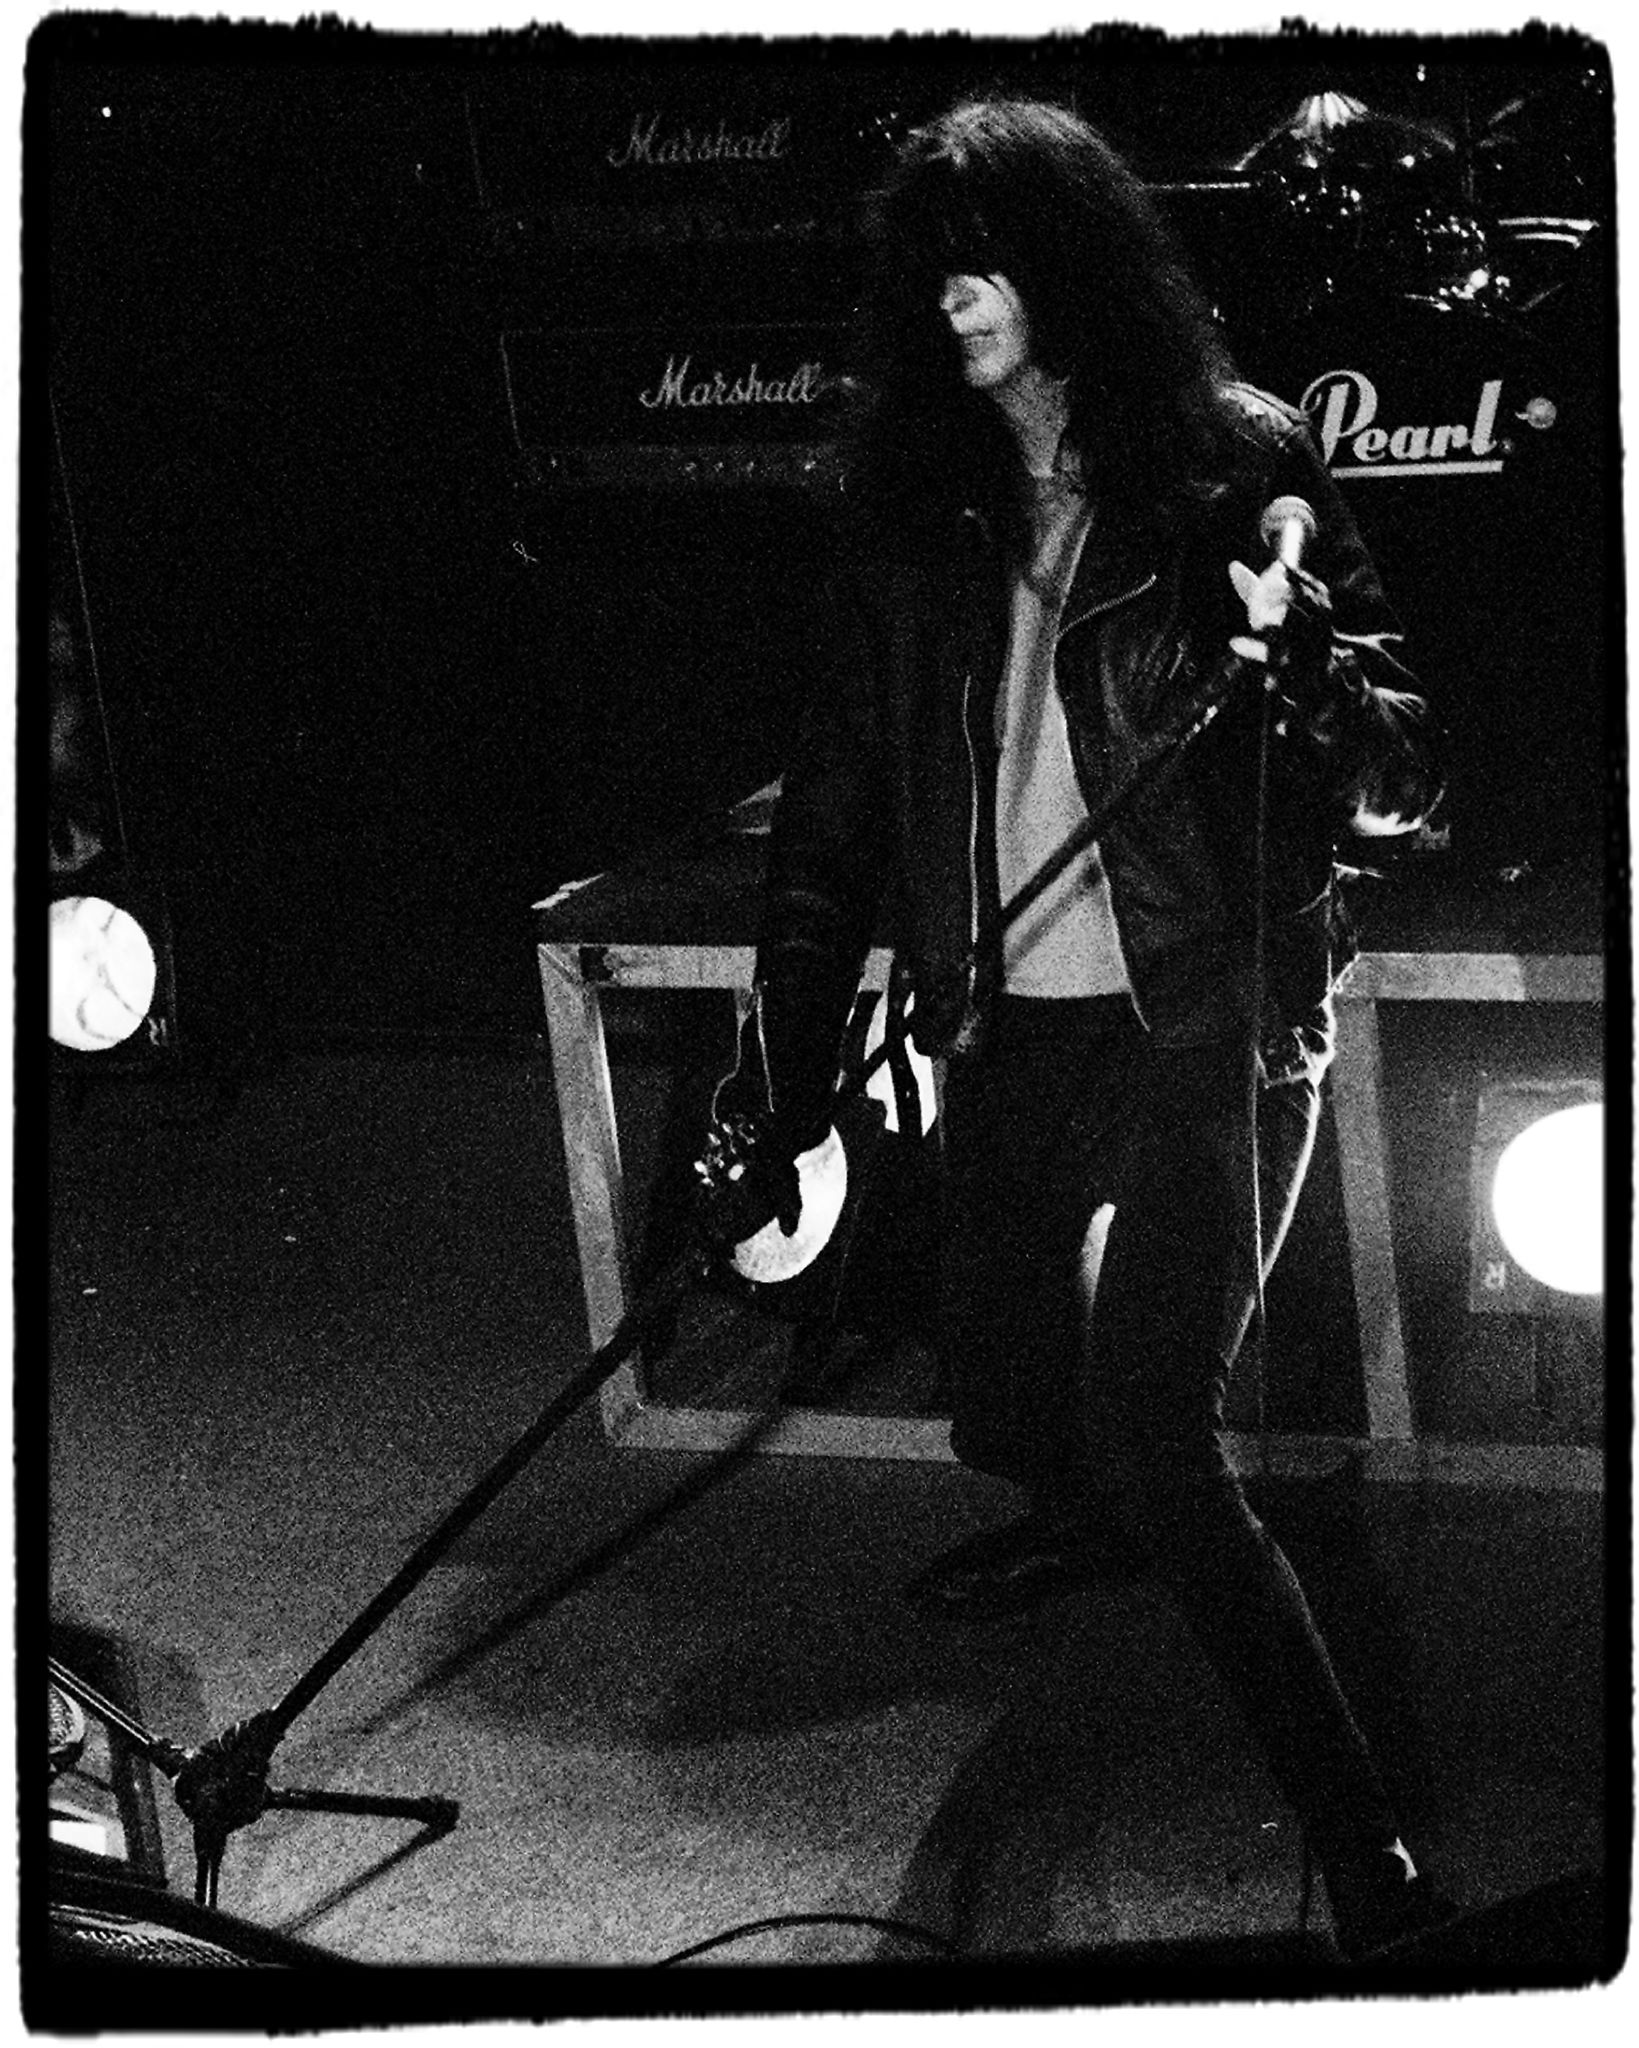 Interesting fact: Joey Ramone was born with a parasitic twin growing out of his back